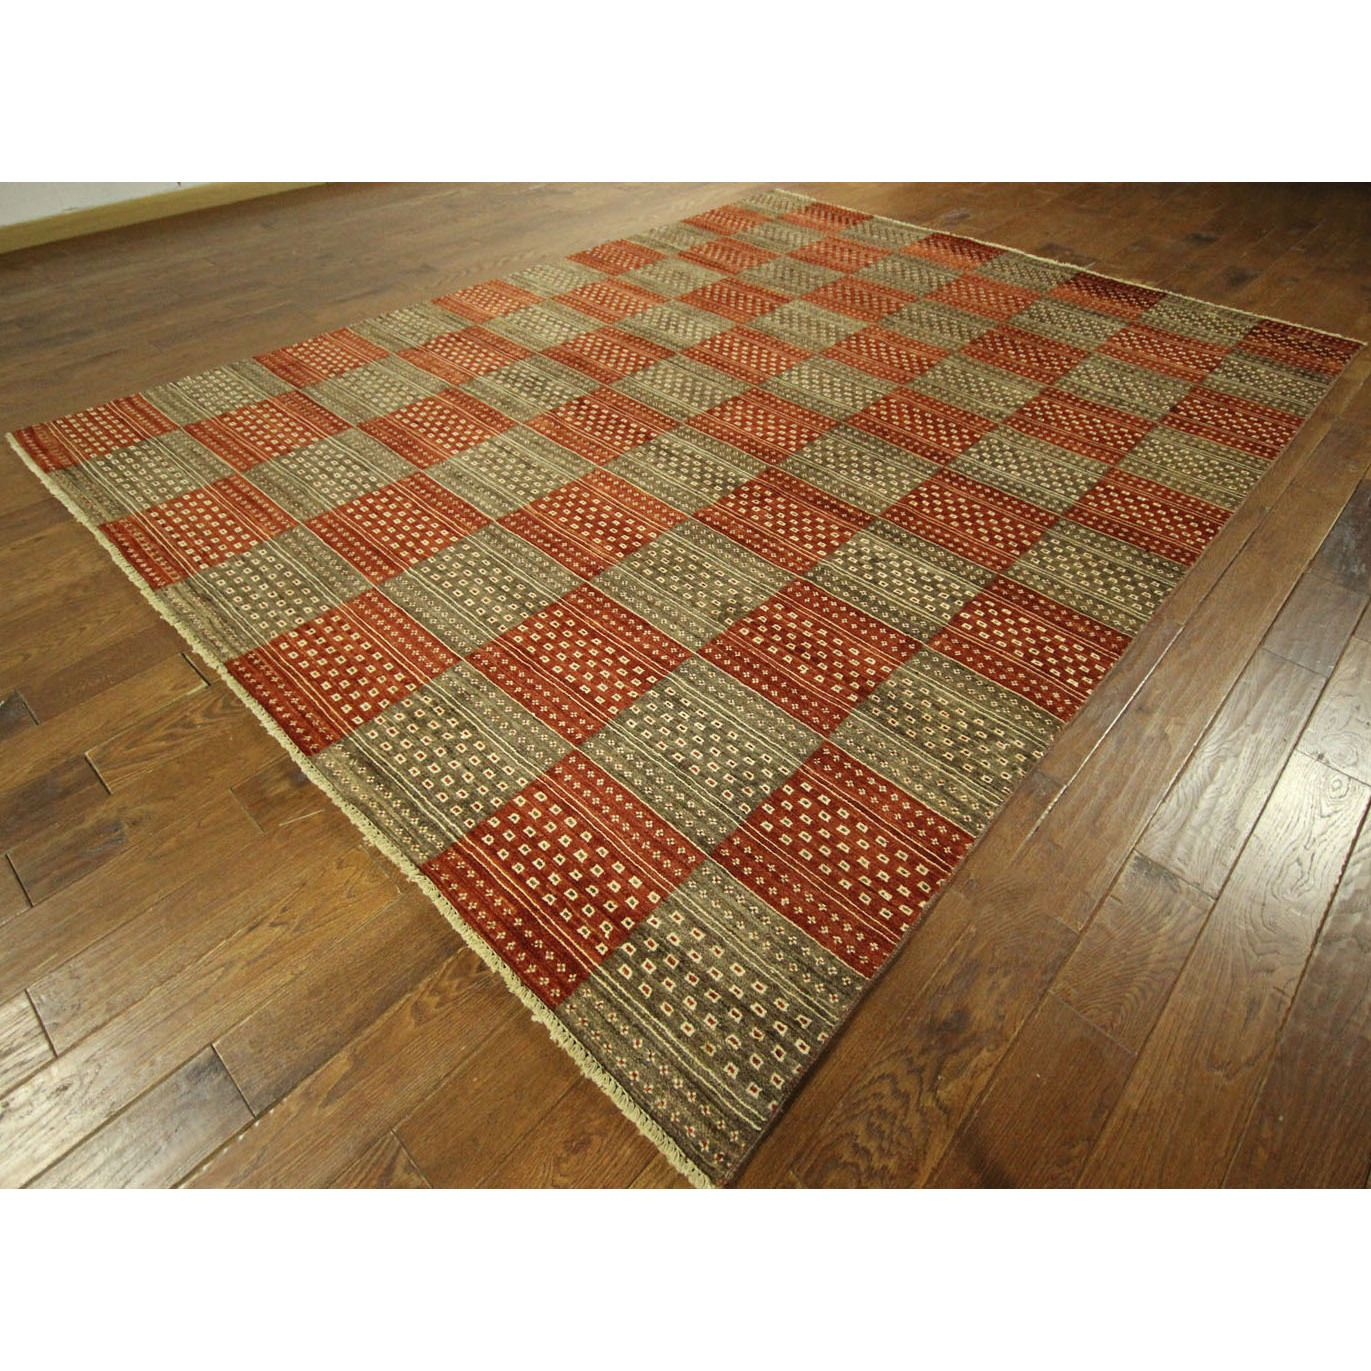 For Multi Colored Checked Double Knotted Gabbeh Hand Wool Area Rug X Get Free Shipping At Your Online Home Decor Outlet